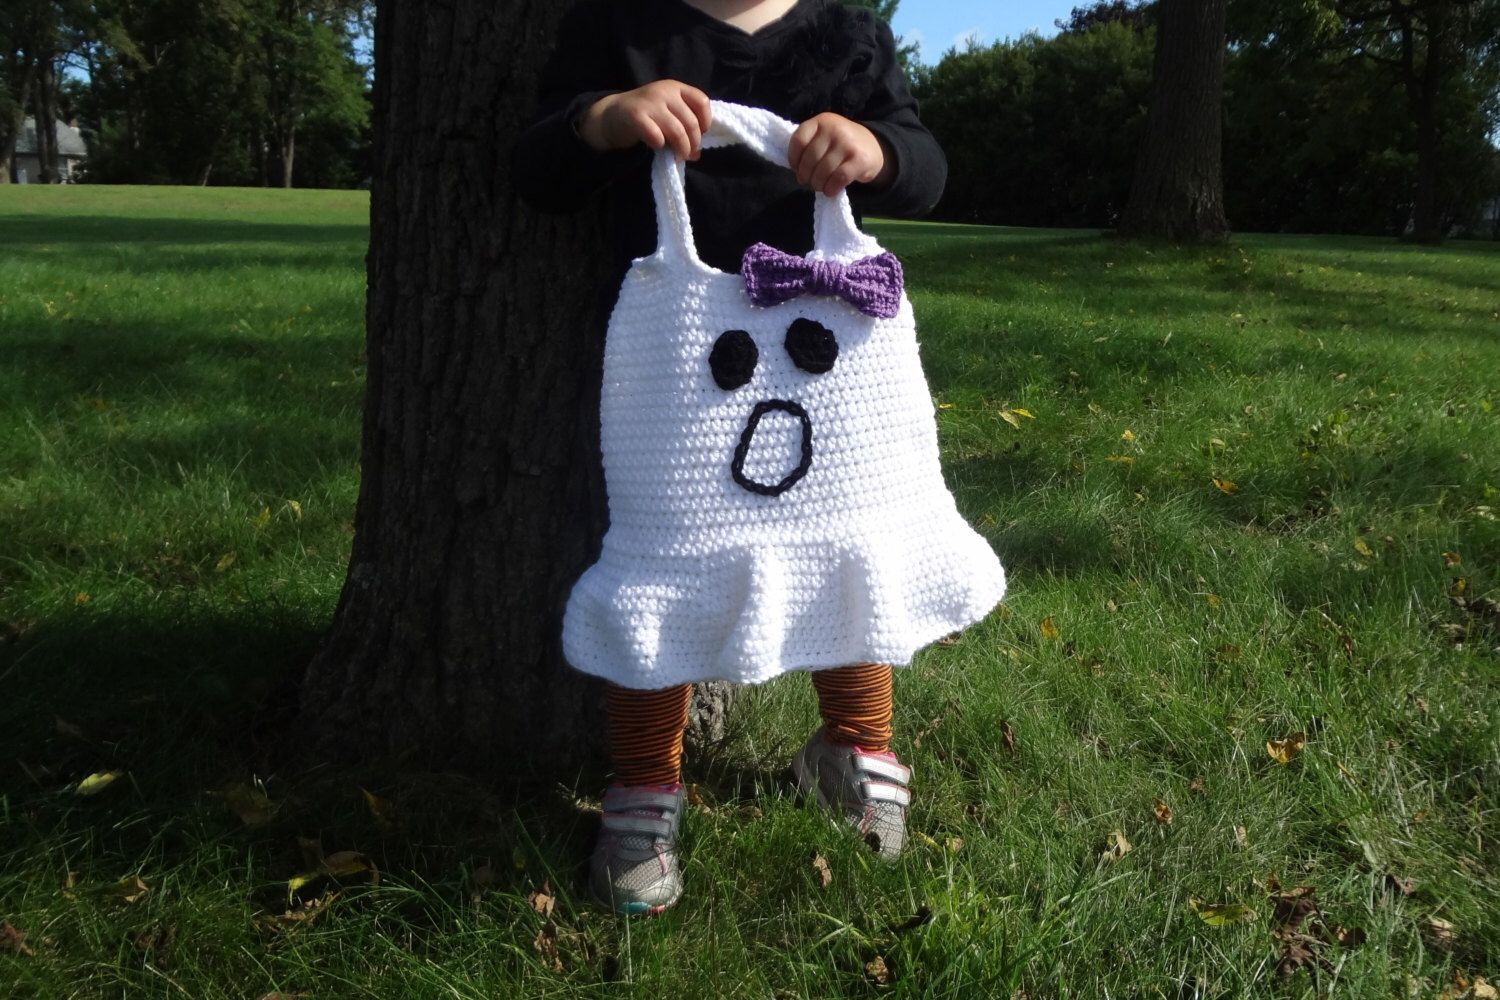 Ghost Halloween Trick-or-Treat Bag - Hand Crocheted by StitchedInADream on Etsy https://www.etsy.com/listing/245470696/ghost-halloween-trick-or-treat-bag-hand